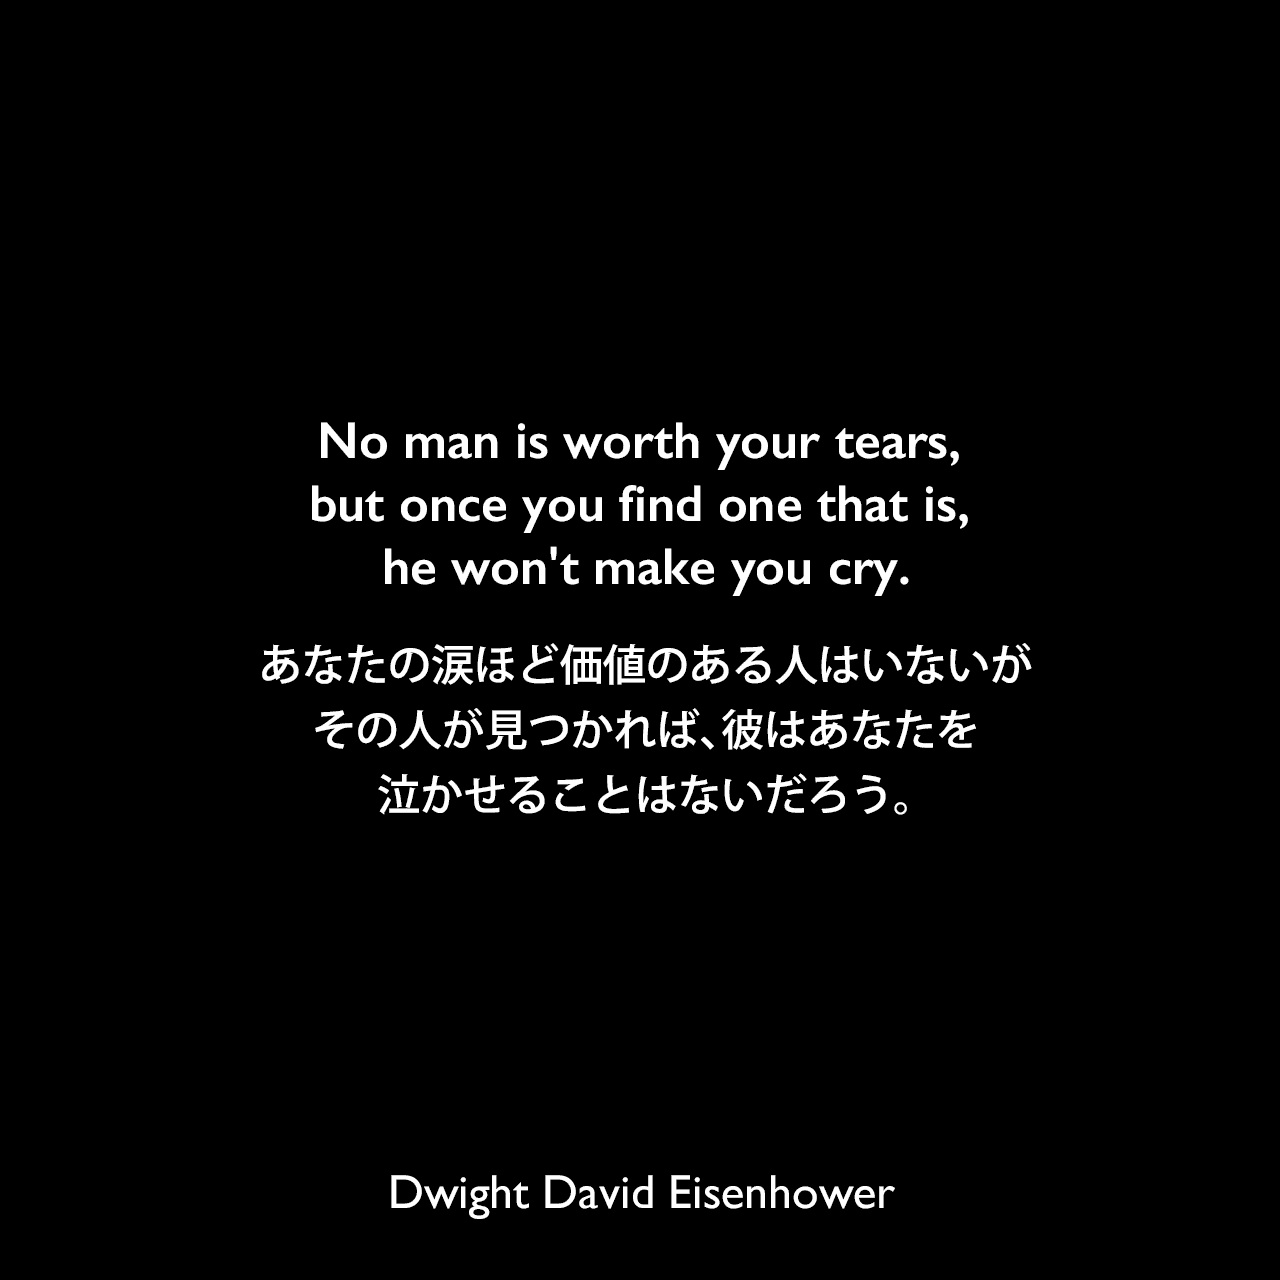 No man is worth your tears, but once you find one that is, he won't make you cry.あなたの涙ほど価値のある人はいないが、その人が見つかれば、彼はあなたを泣かせることはないだろう。Dwight David Eisenhower